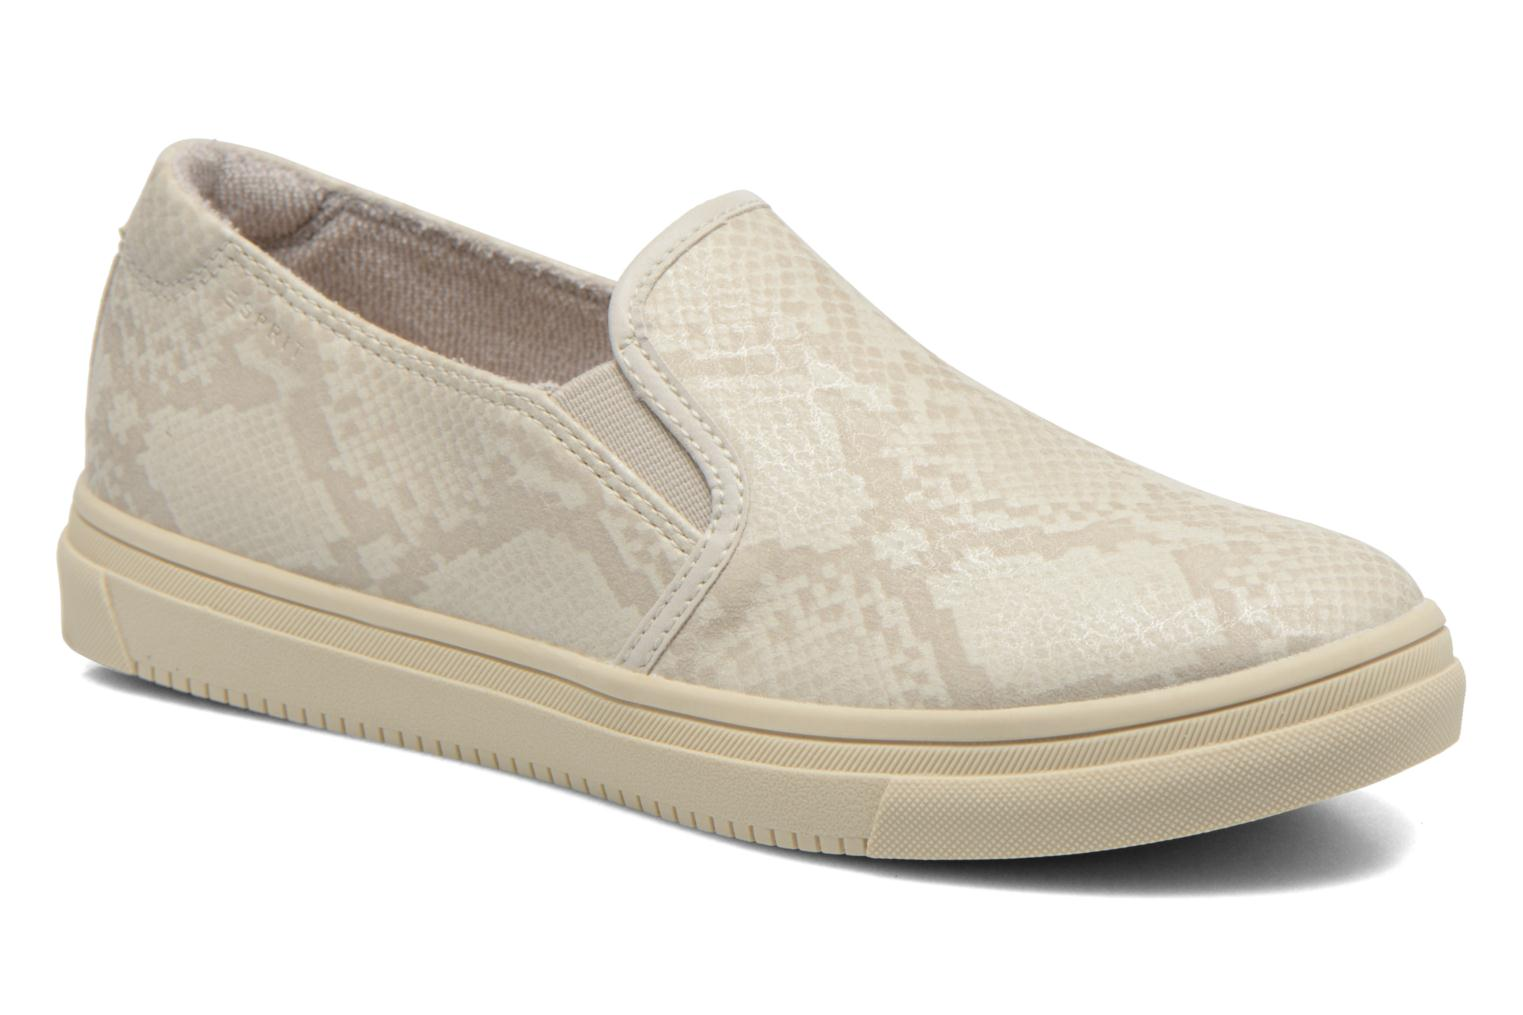 Yendis Slip on 009 Cream Beige